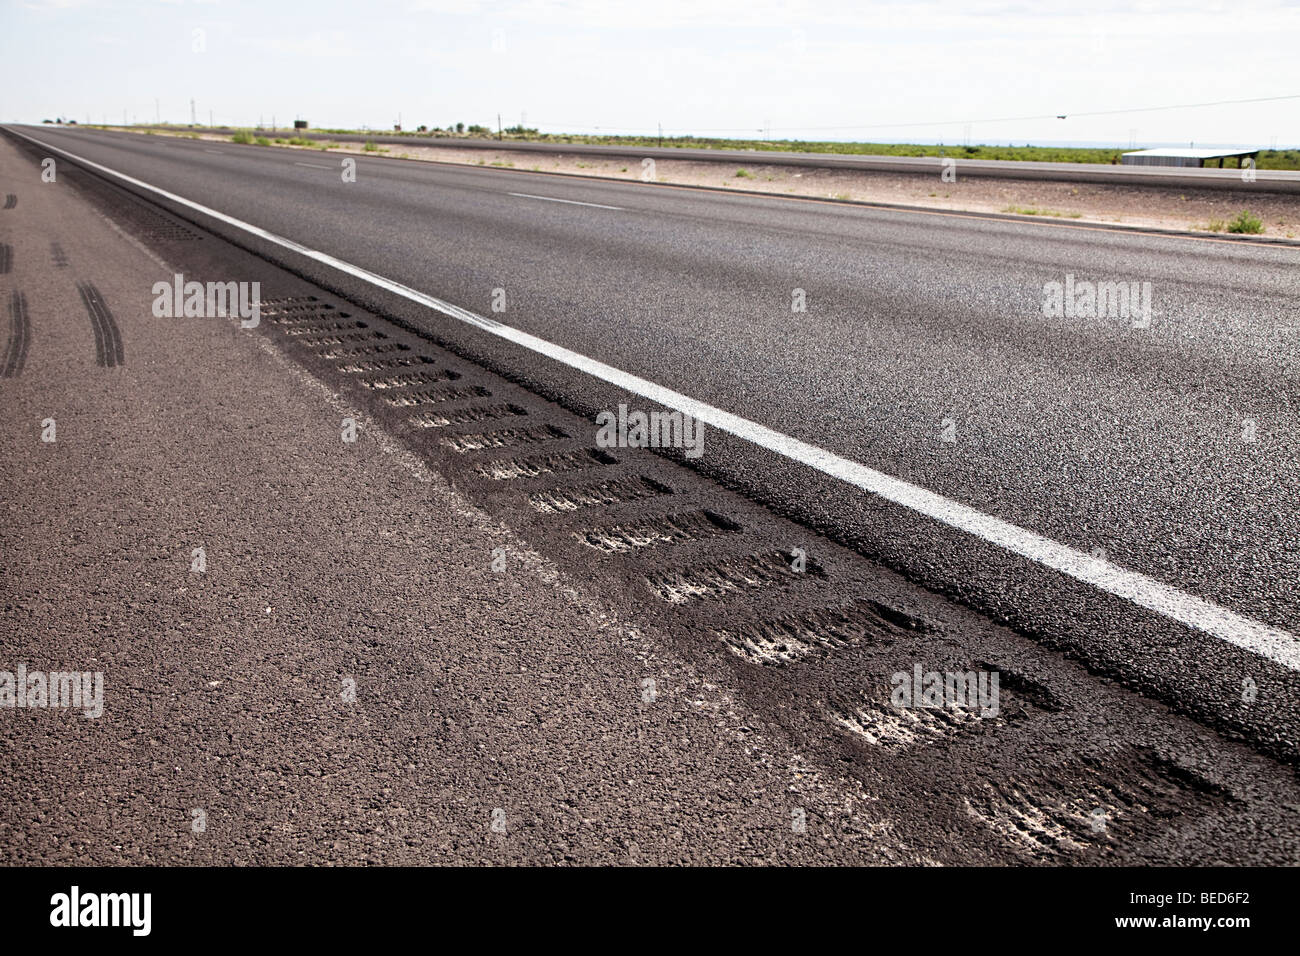 Rumble strip to cause vibration in wheels if vehicle crosses the line at the edge of the road Carlsbad New Mexico Stock Photo